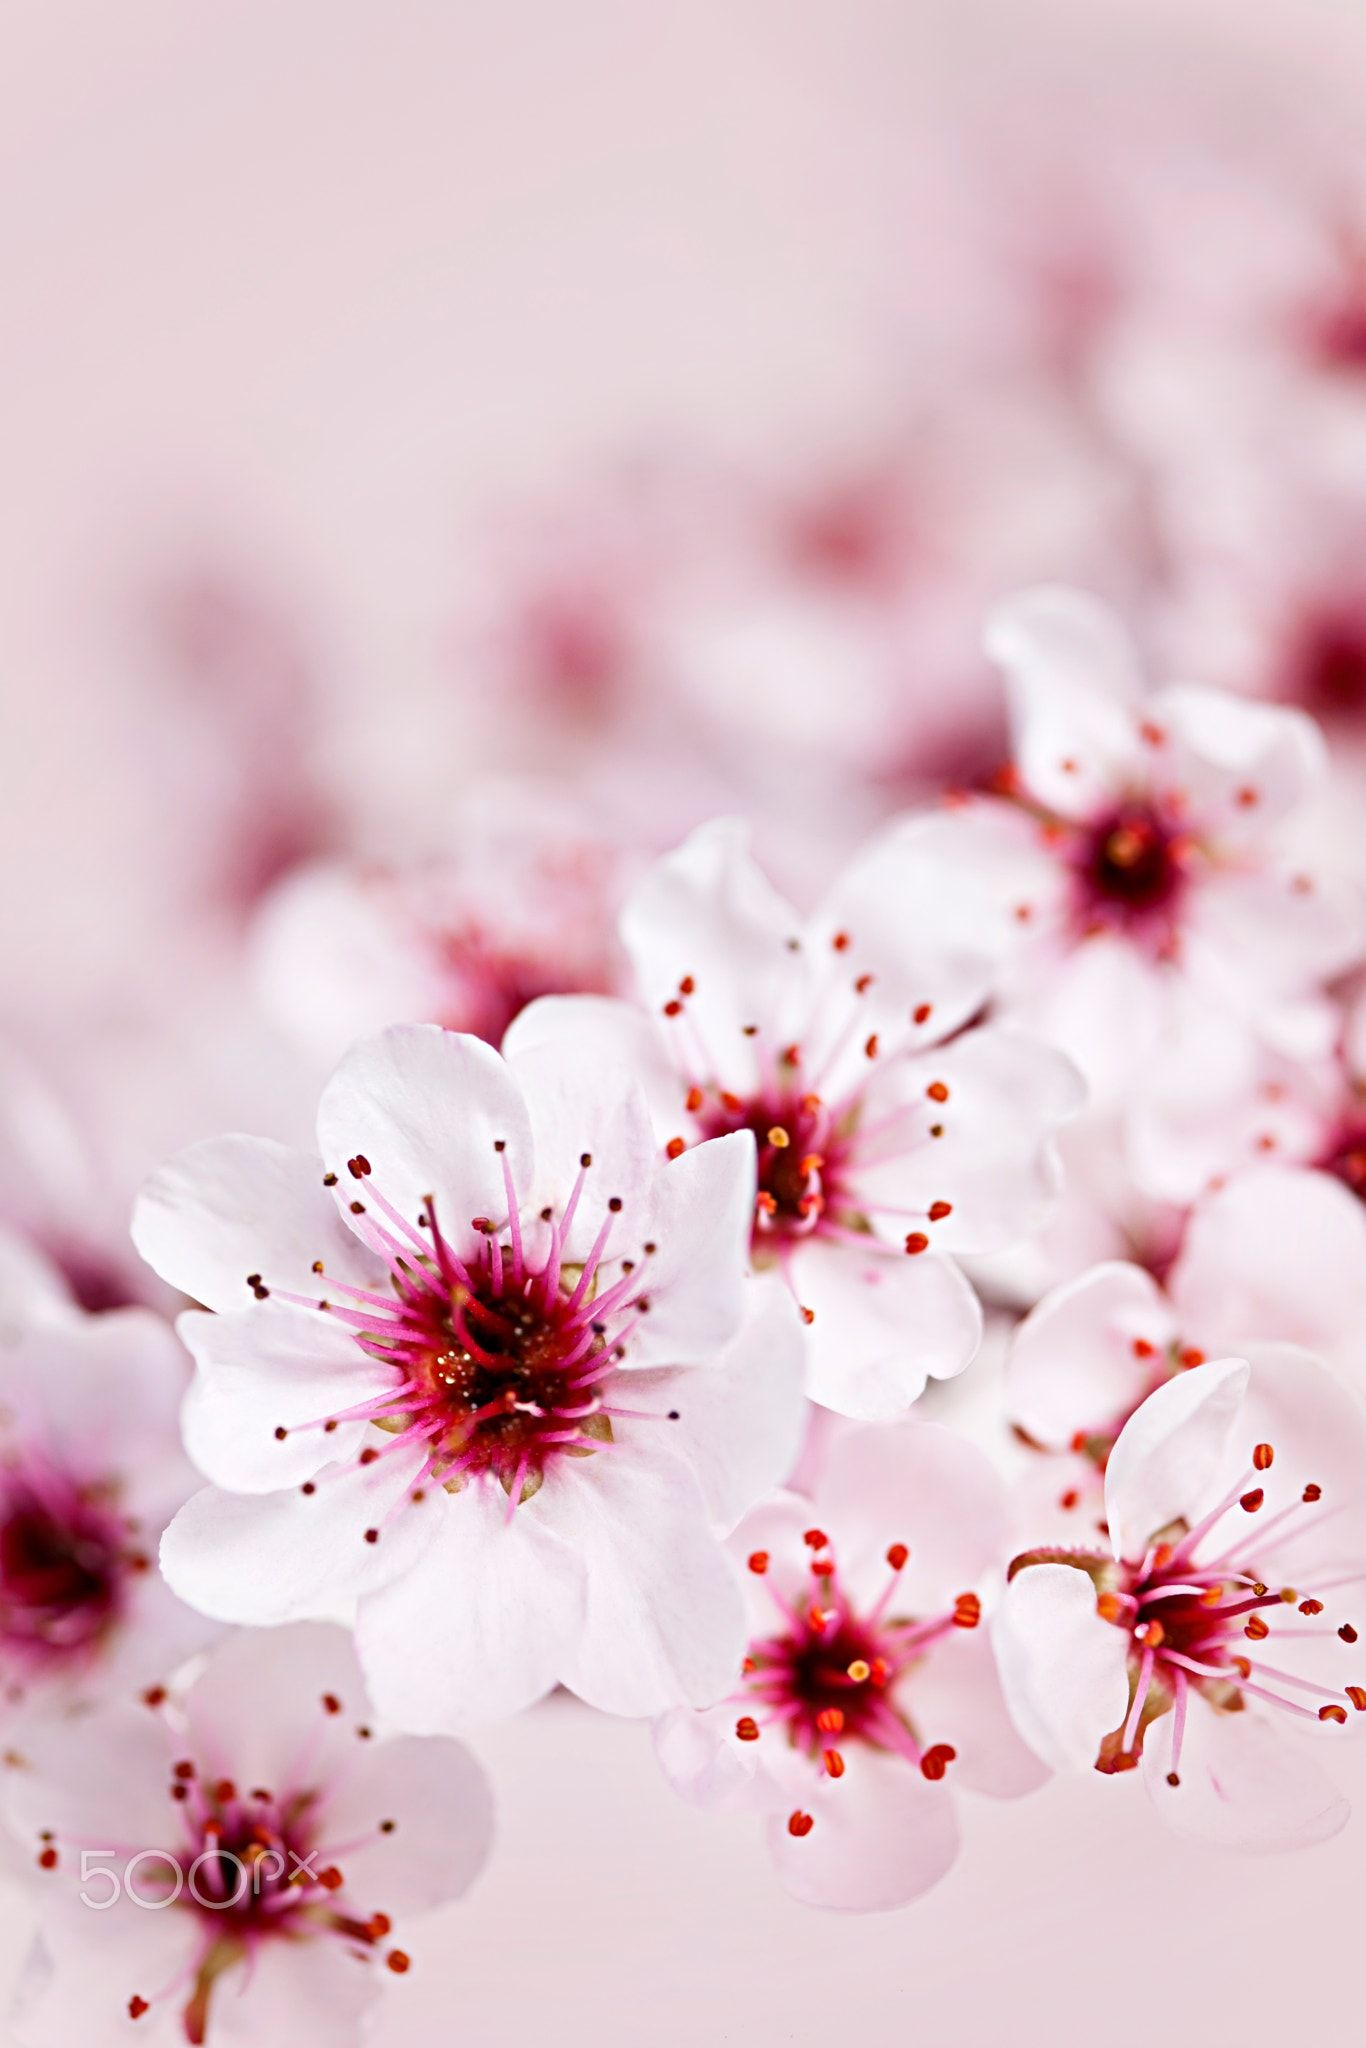 Cherry Blossoms Cluster Of Delicate Pink Cherry Blossom Flowers Cherry Blossom Flowers Cherry Blossom Art Pink Blossom